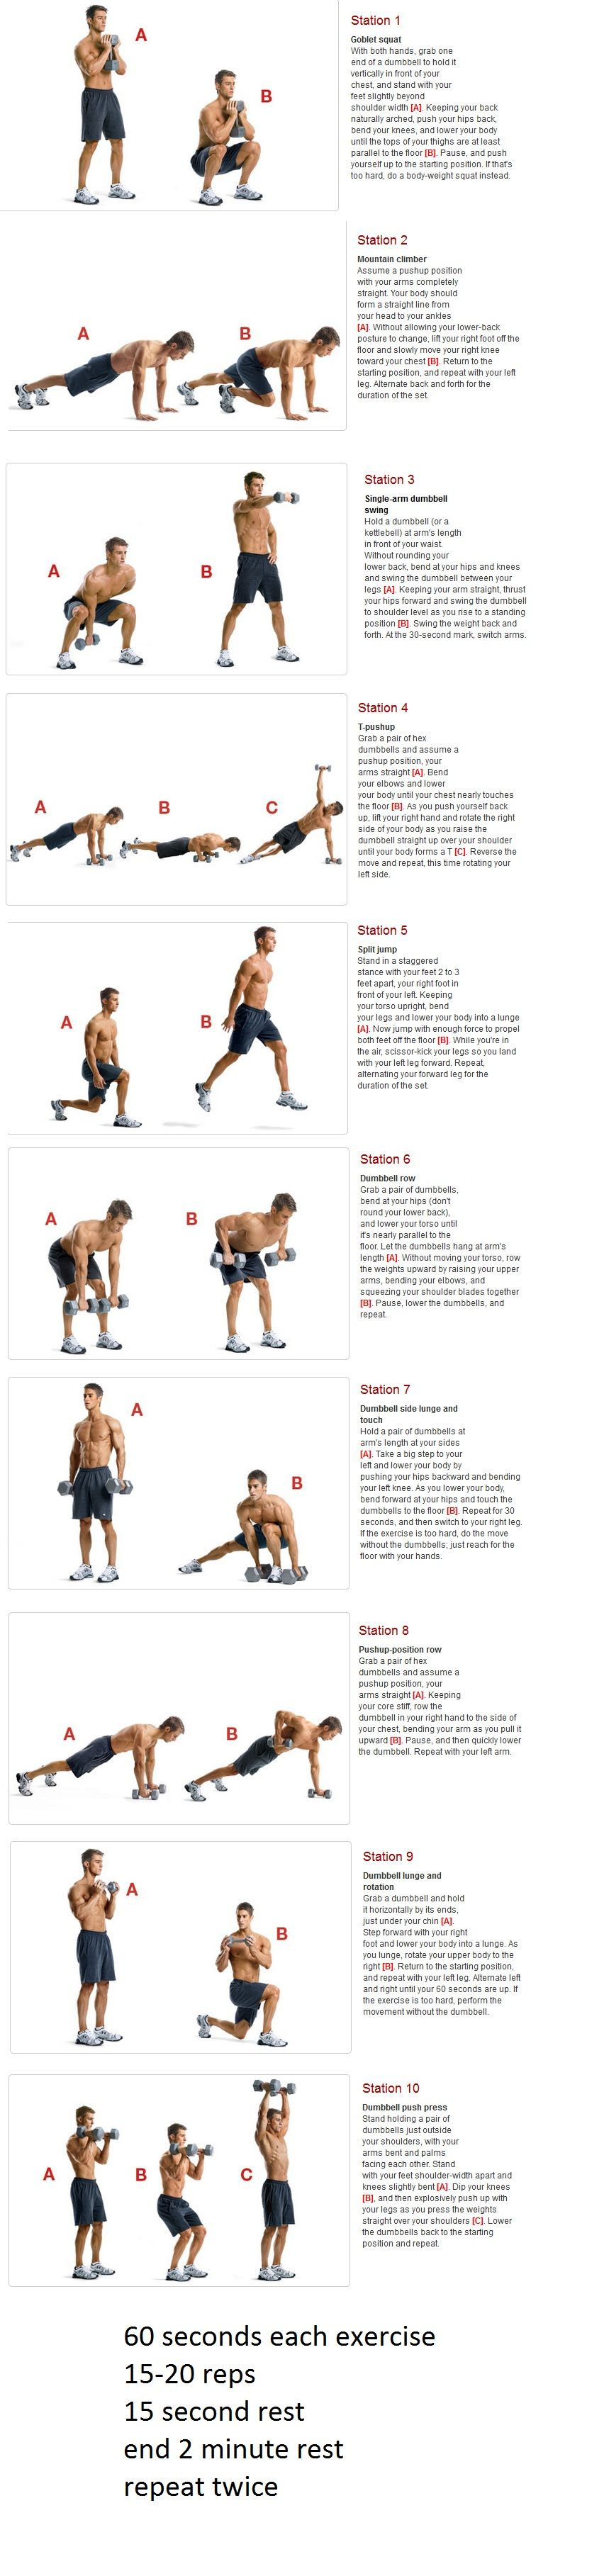 Fascinating Bodybuilding Pin Re Pinned By Golden Age Muscle Movies The World S Spartacus Workout Fitness Body Workout